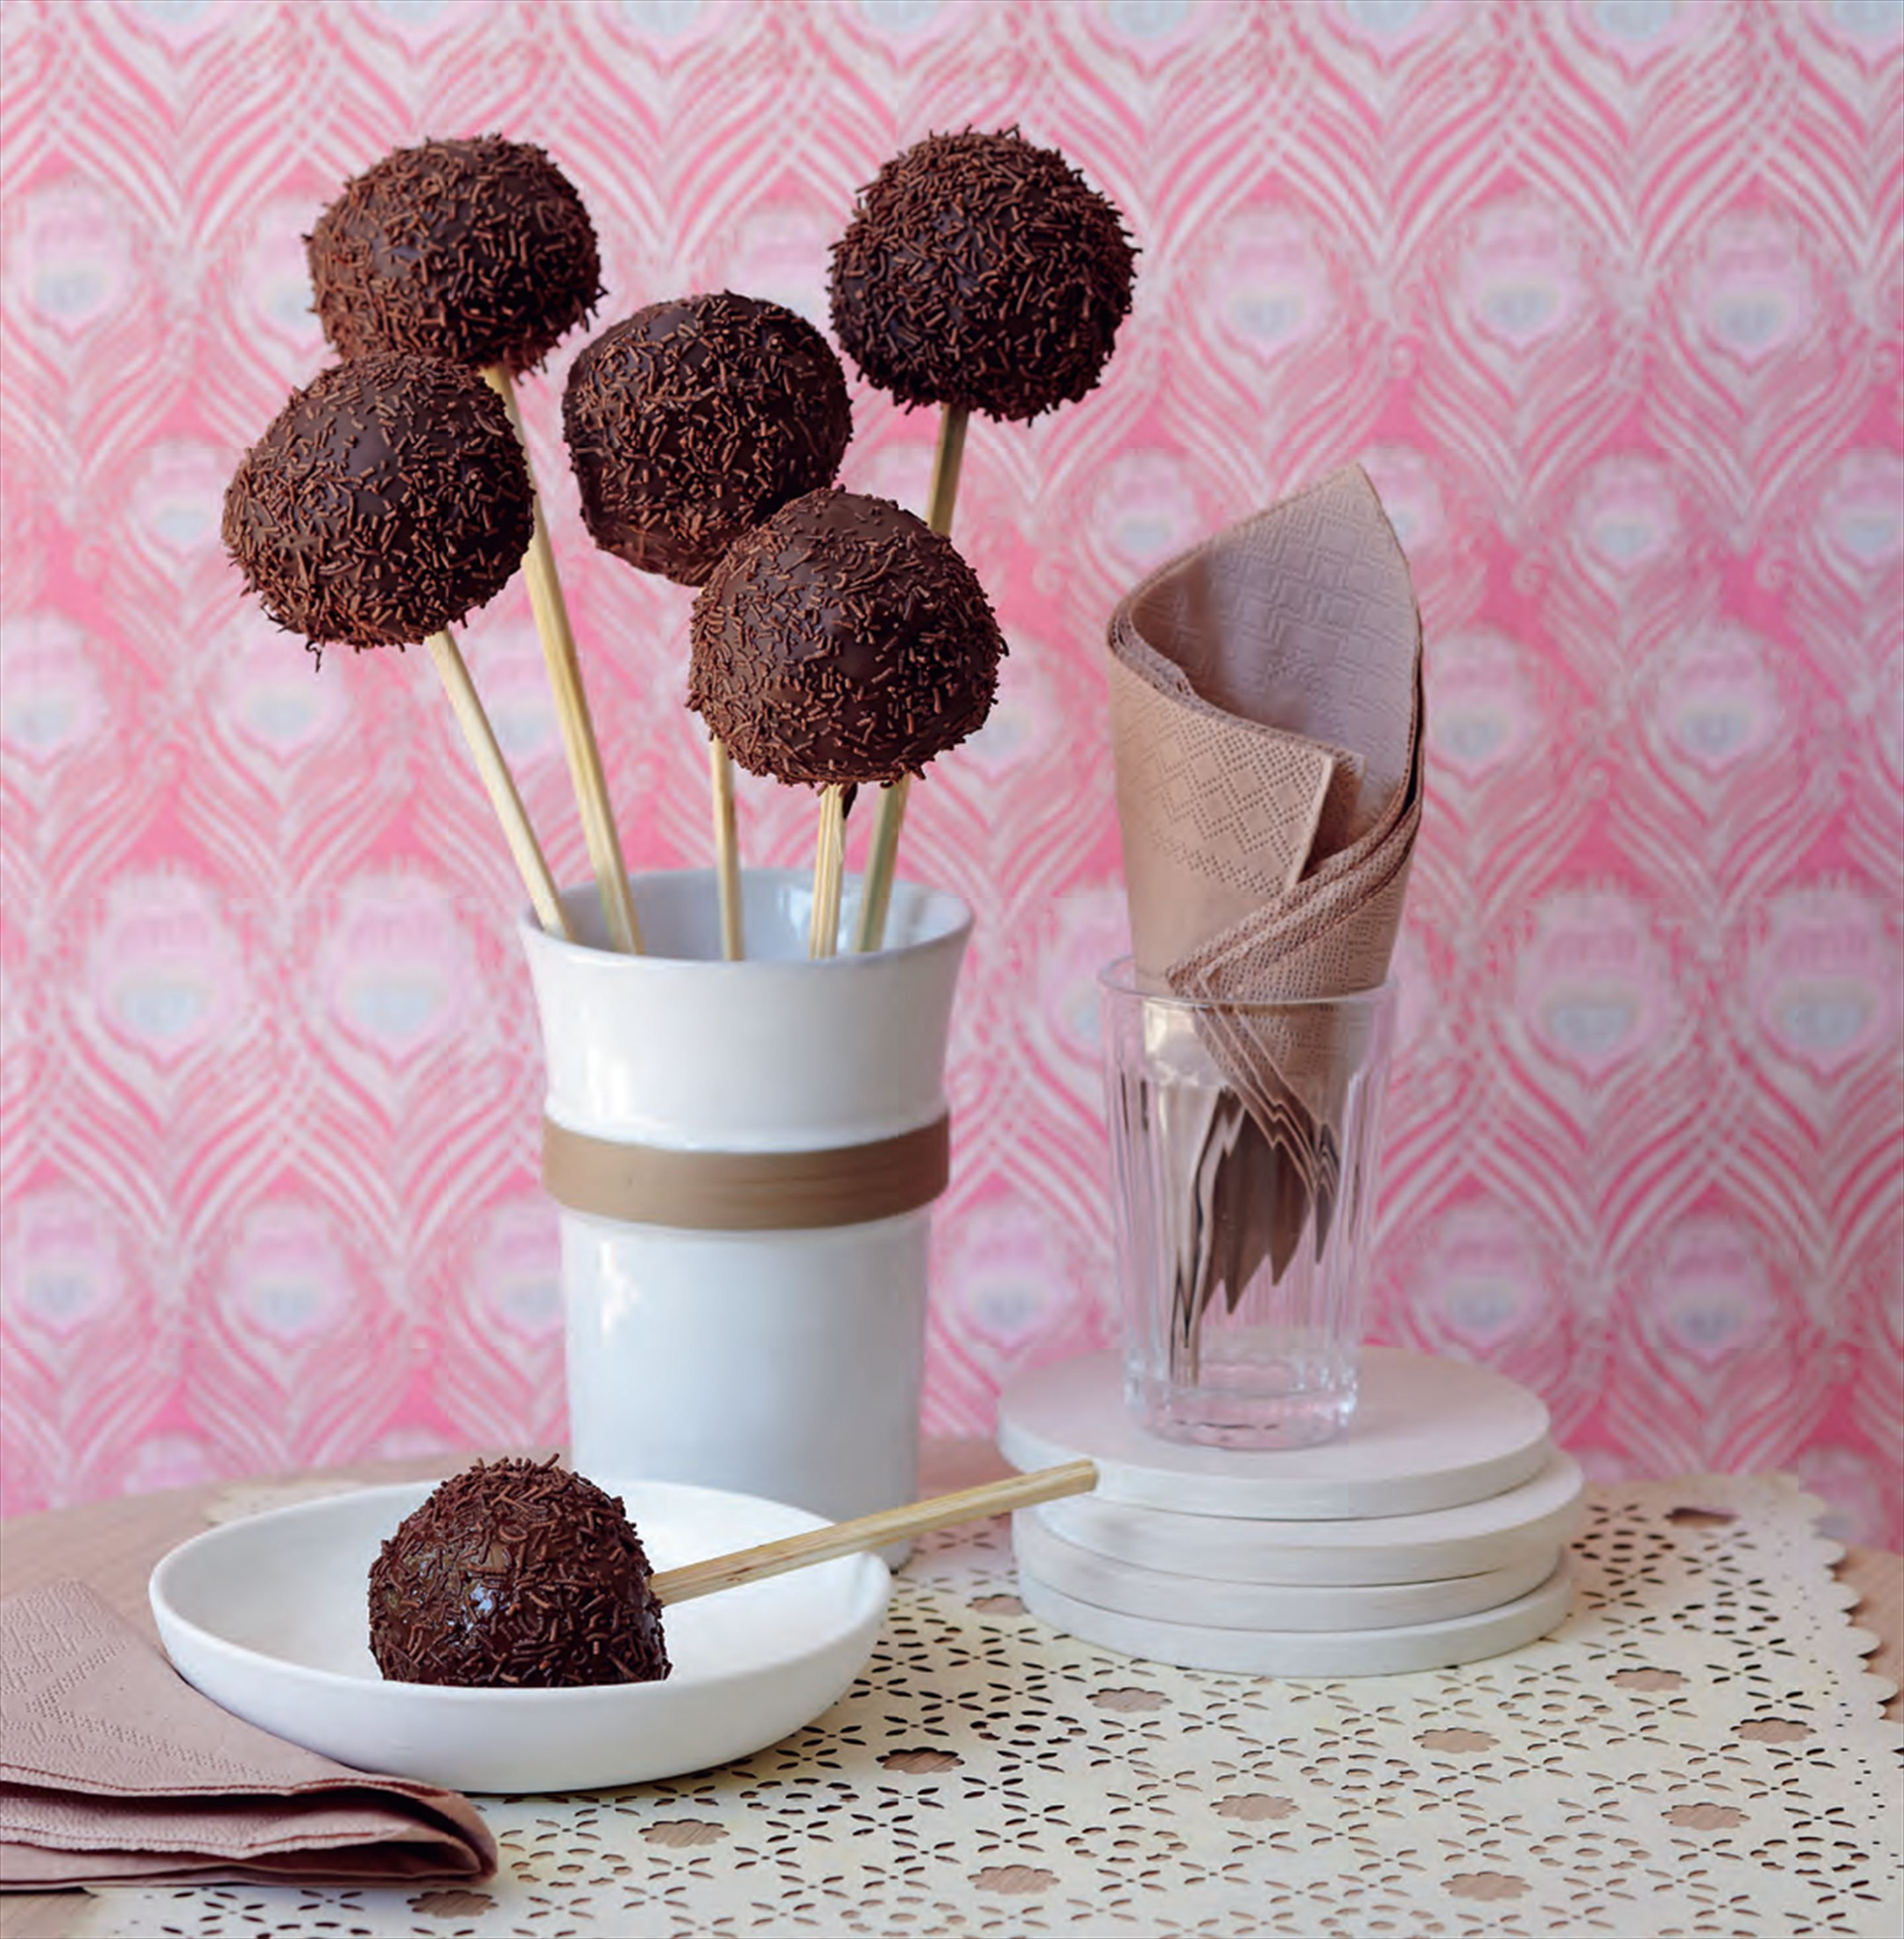 Walnut brownie pops